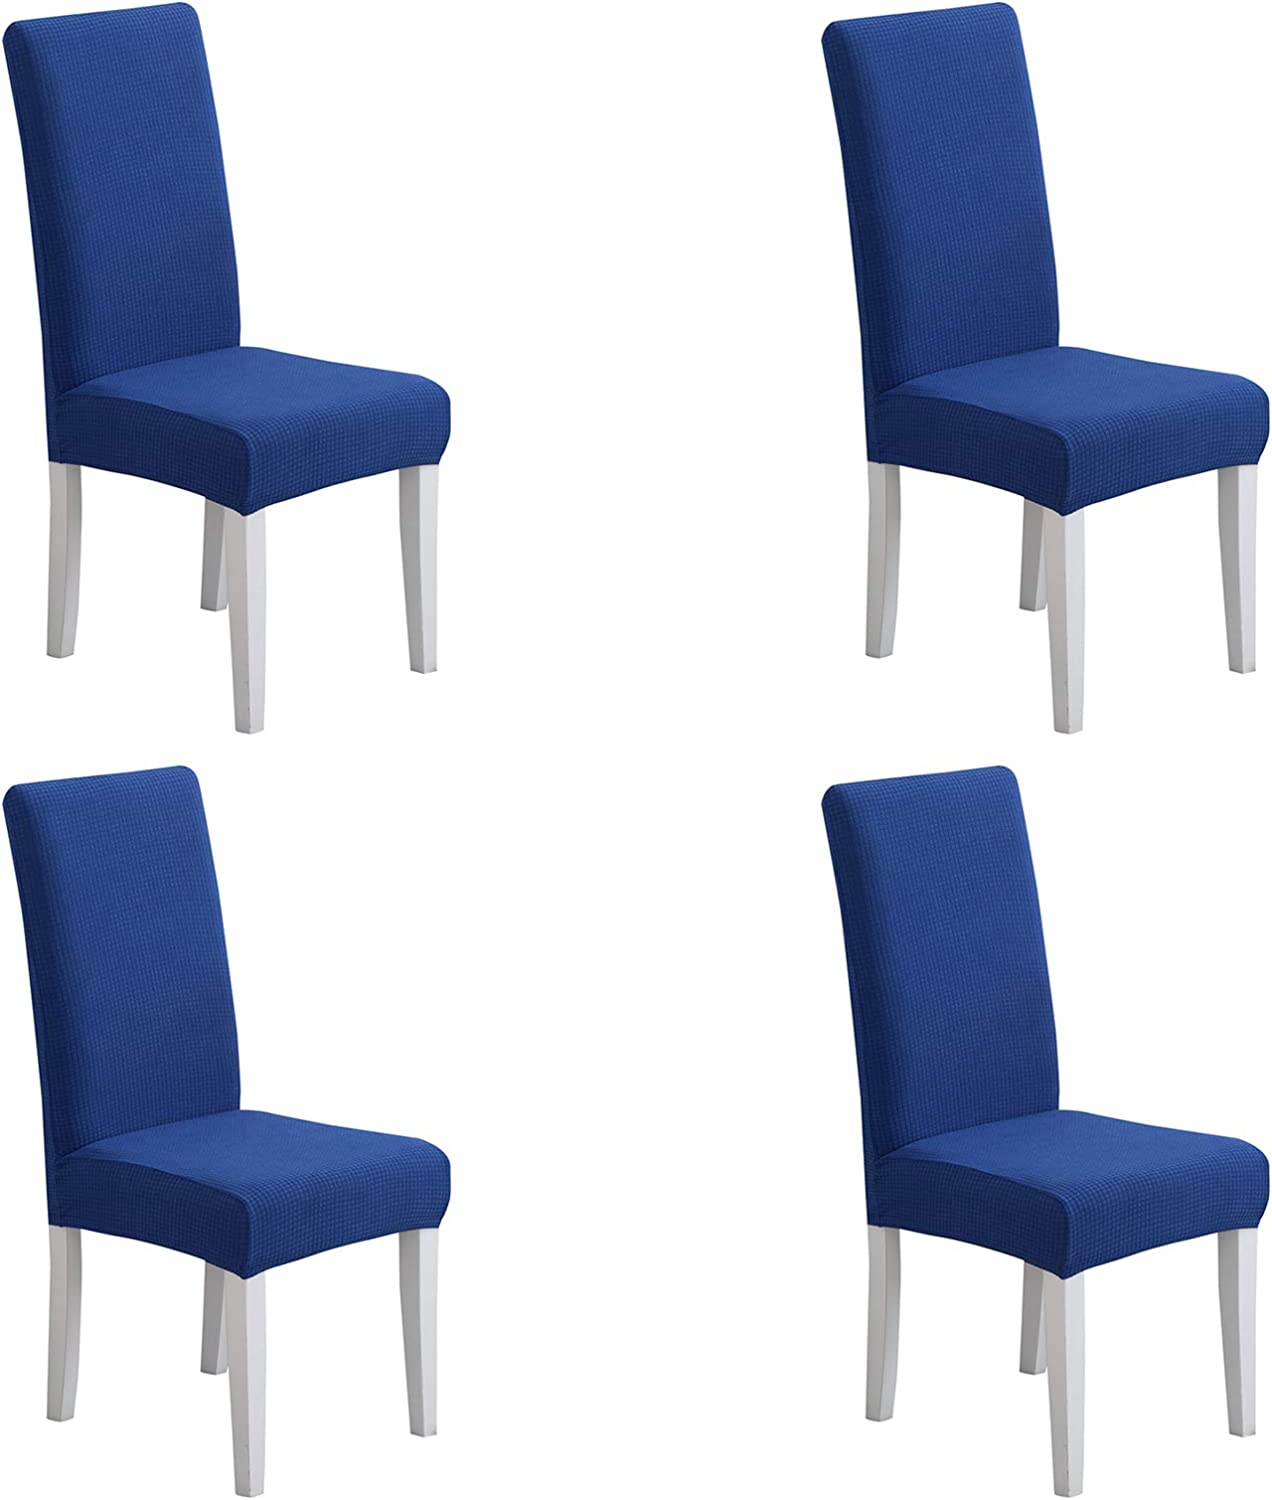 Pack of 4 - Dining Room Chair Slipcovers, Stretch Spandex Dining Chair Covers, Furniture Protector Covers Removable & Washable, Perfect for Dining Room, Restaurant, Hotel, Ceremony, Event Royal Blue